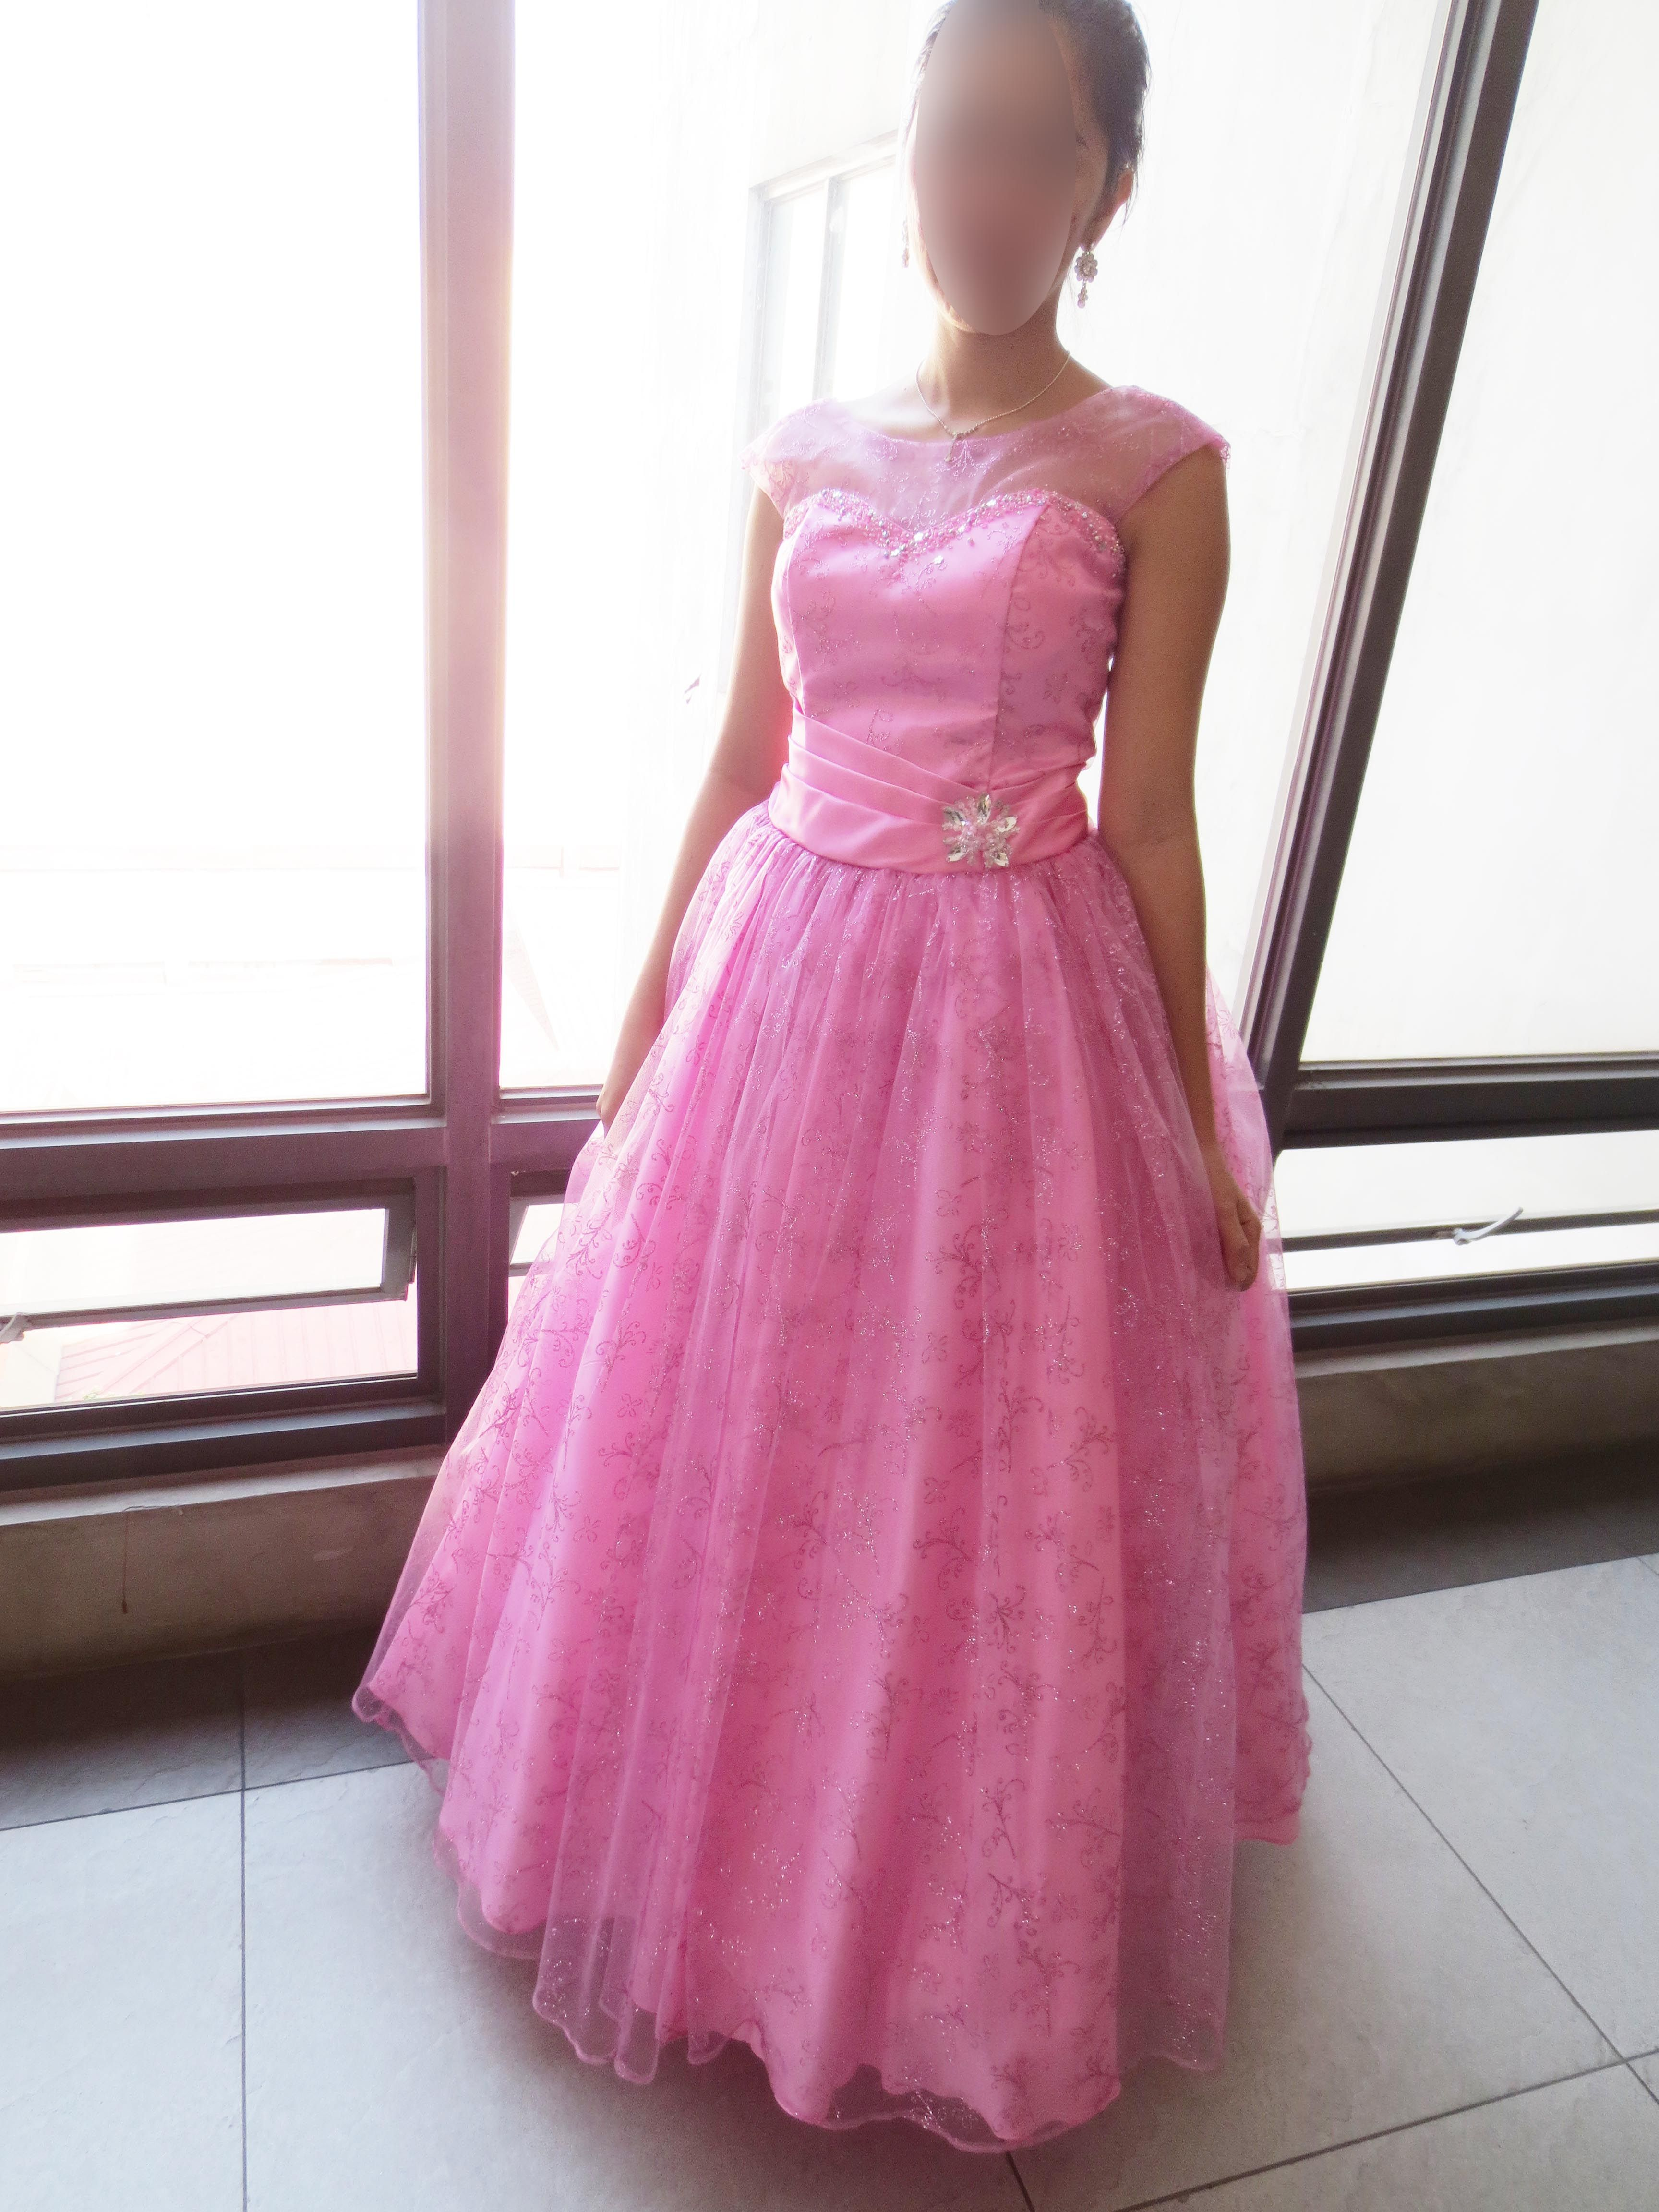 Pastel pink ball gown debut pink ball gown tulle ball gown Php1,000 ...